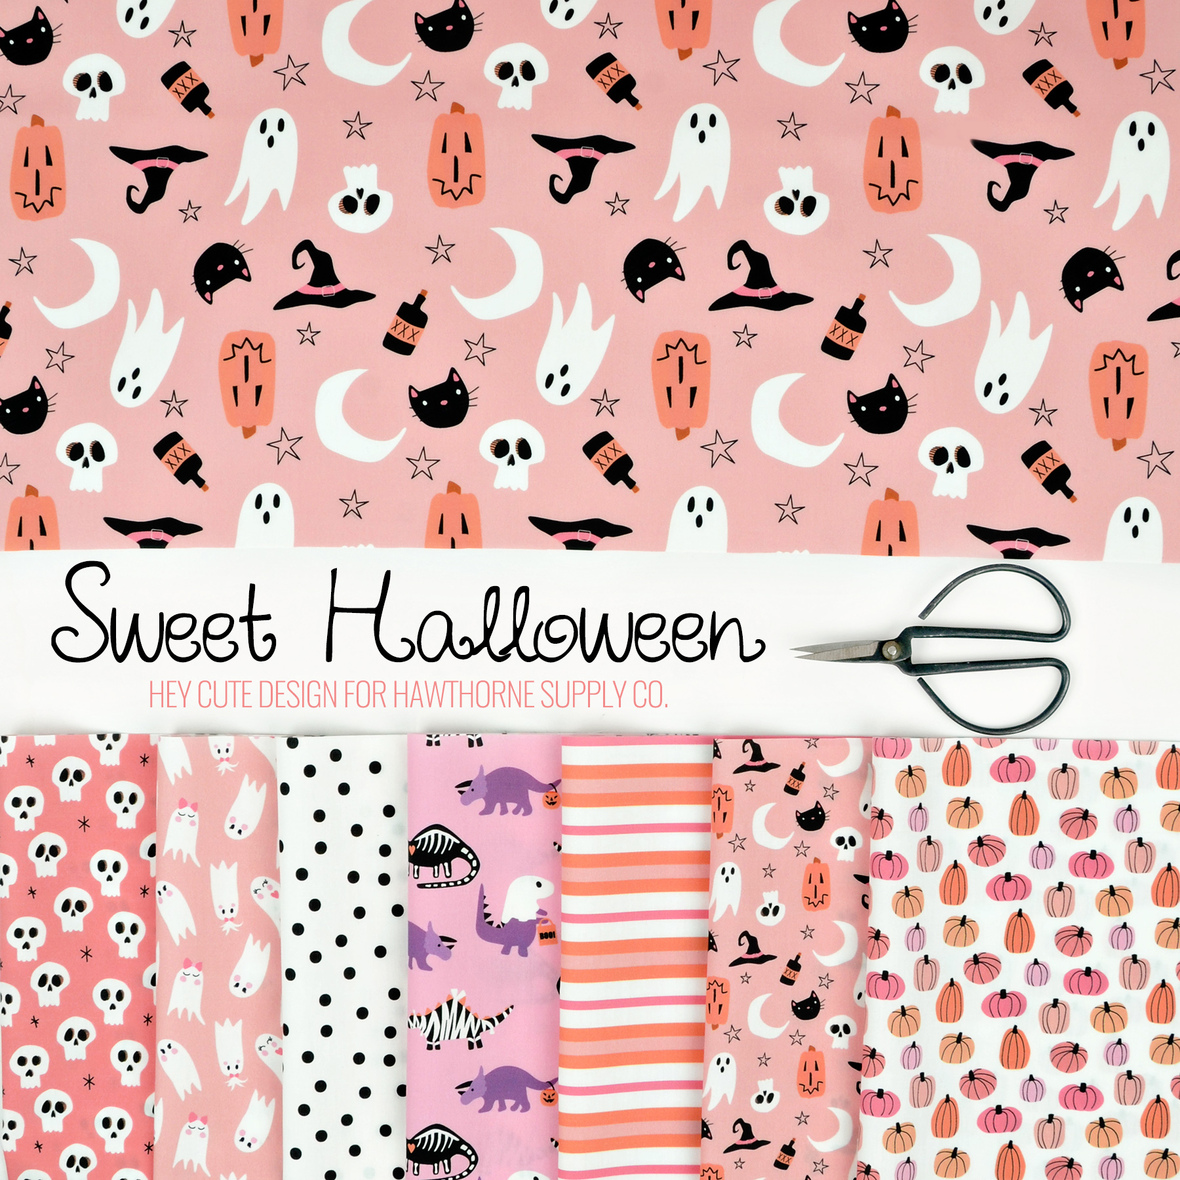 Sweet Halloween by Hey Cute Design for Hawthorne Supply Co.